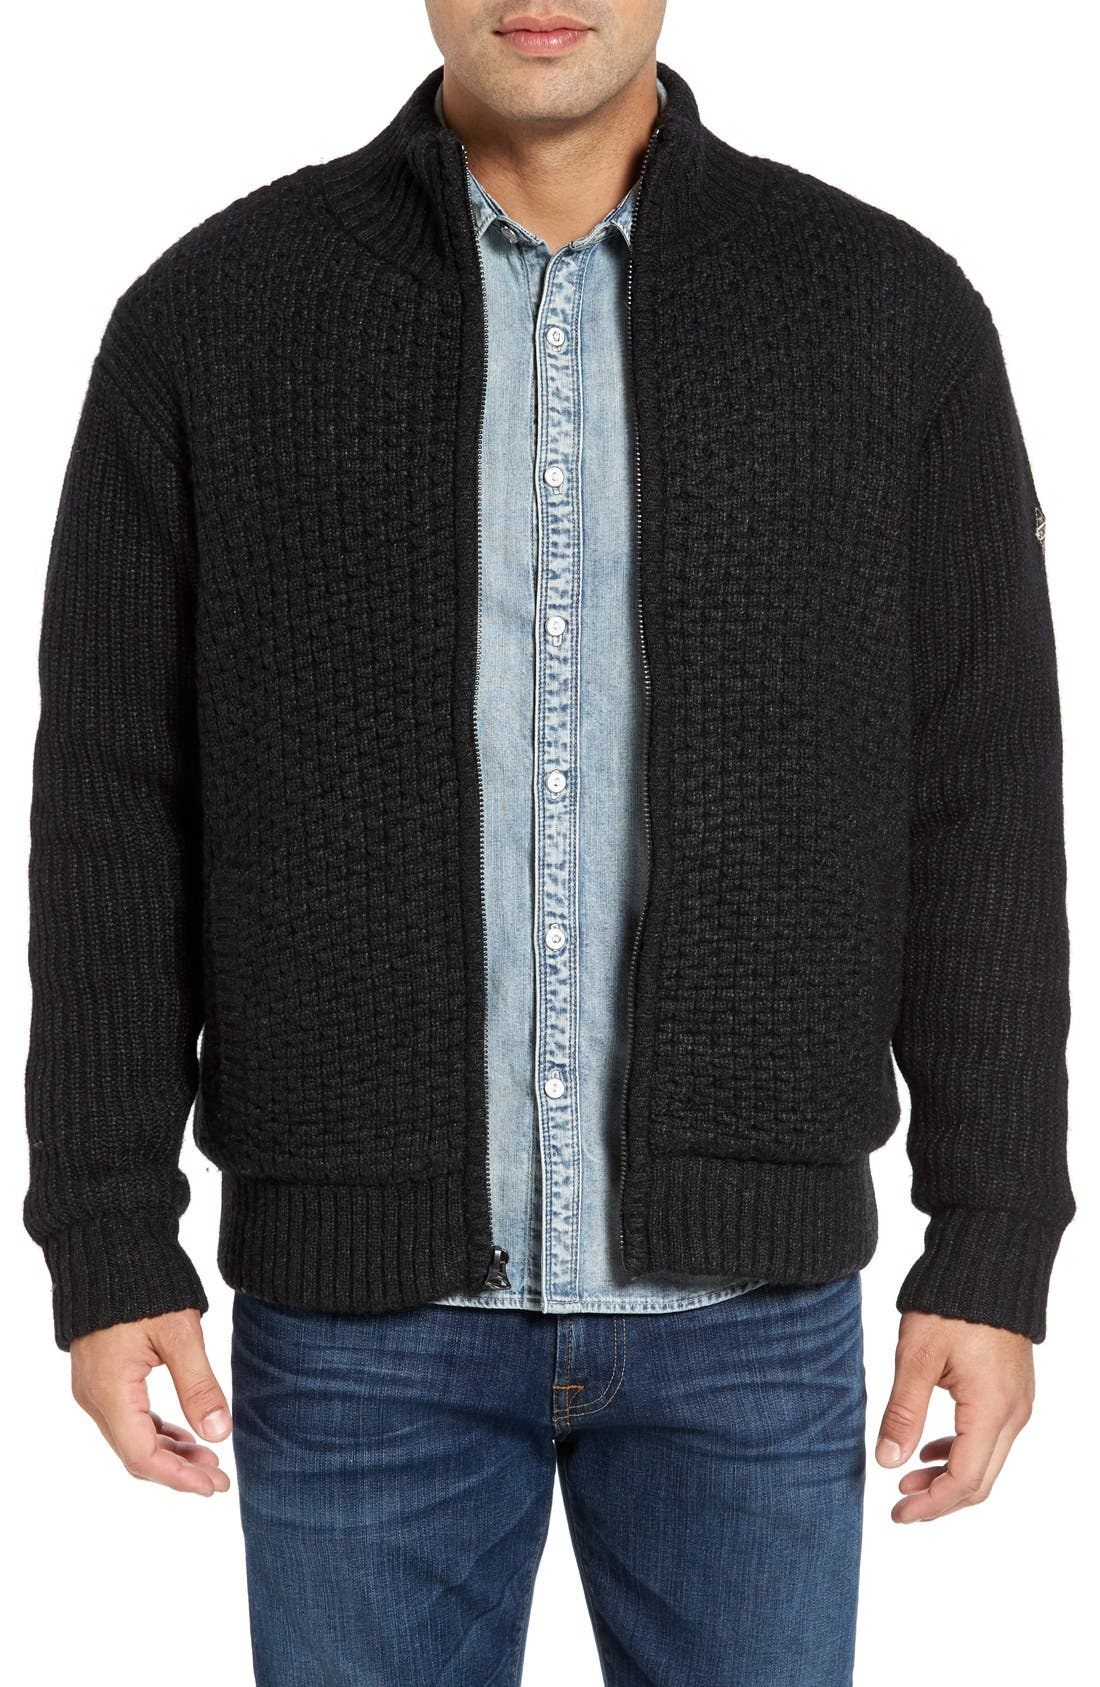 Schott NYC Zip Front Faux Sherpa Lined Sweater Jac